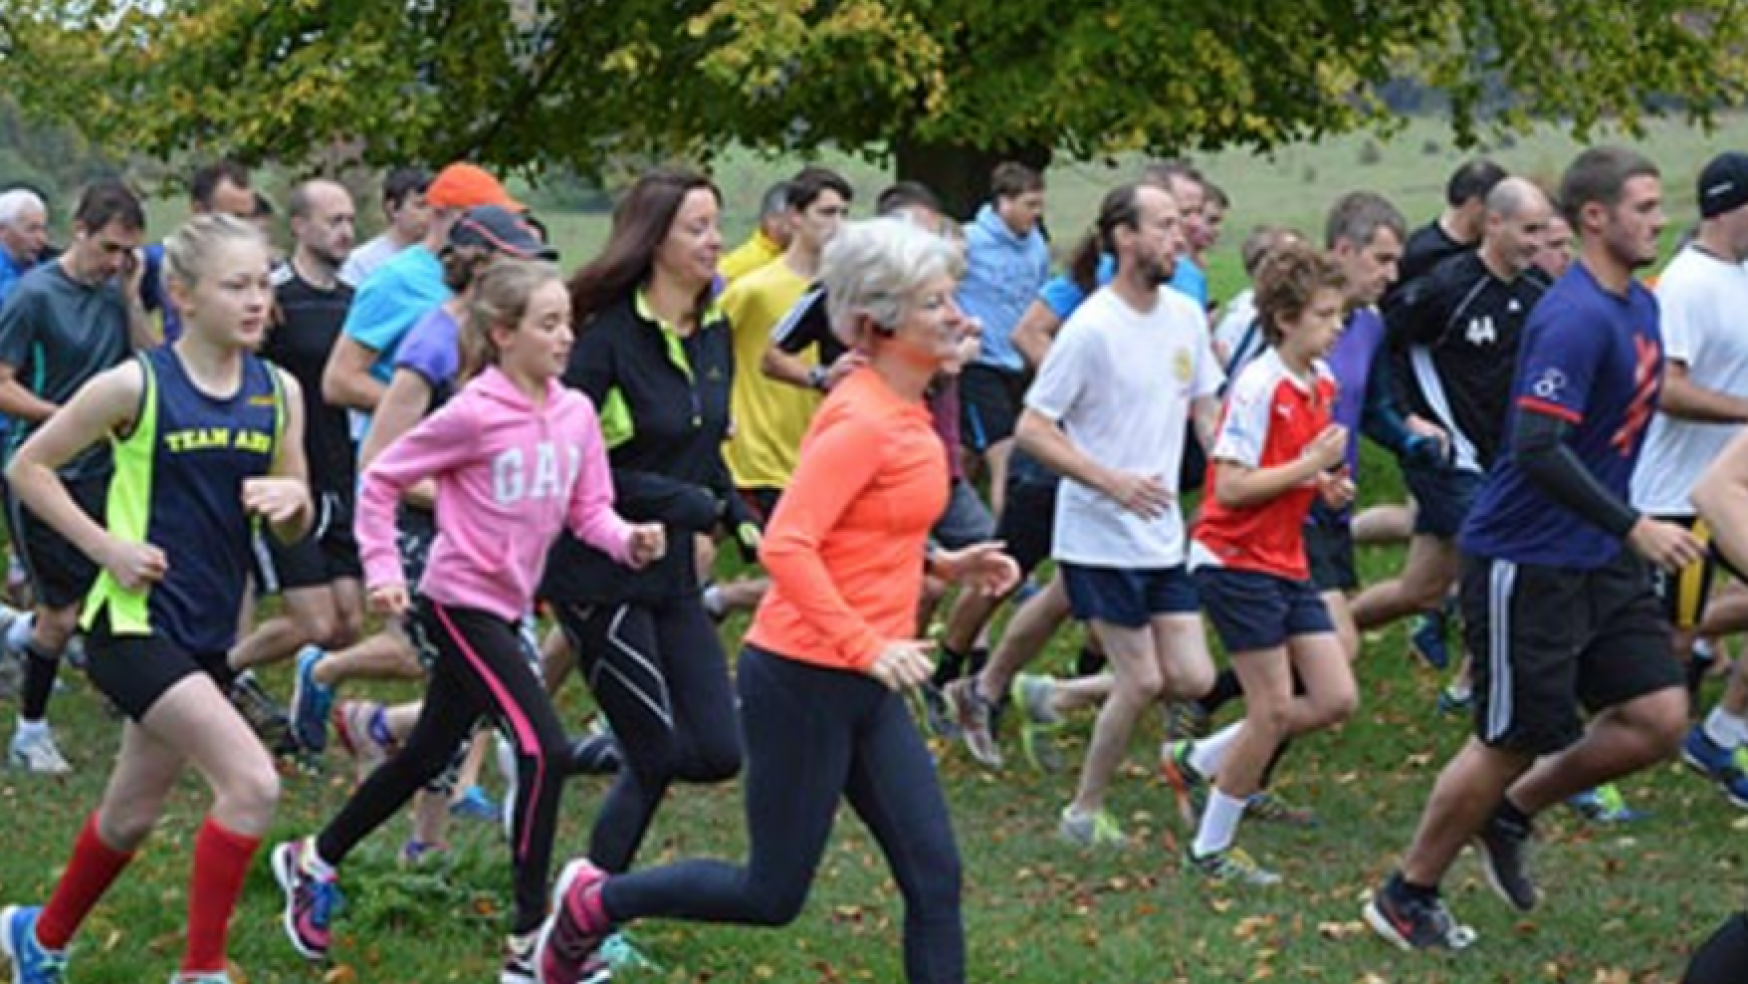 Parkrun launches in the Derbyshire Dales